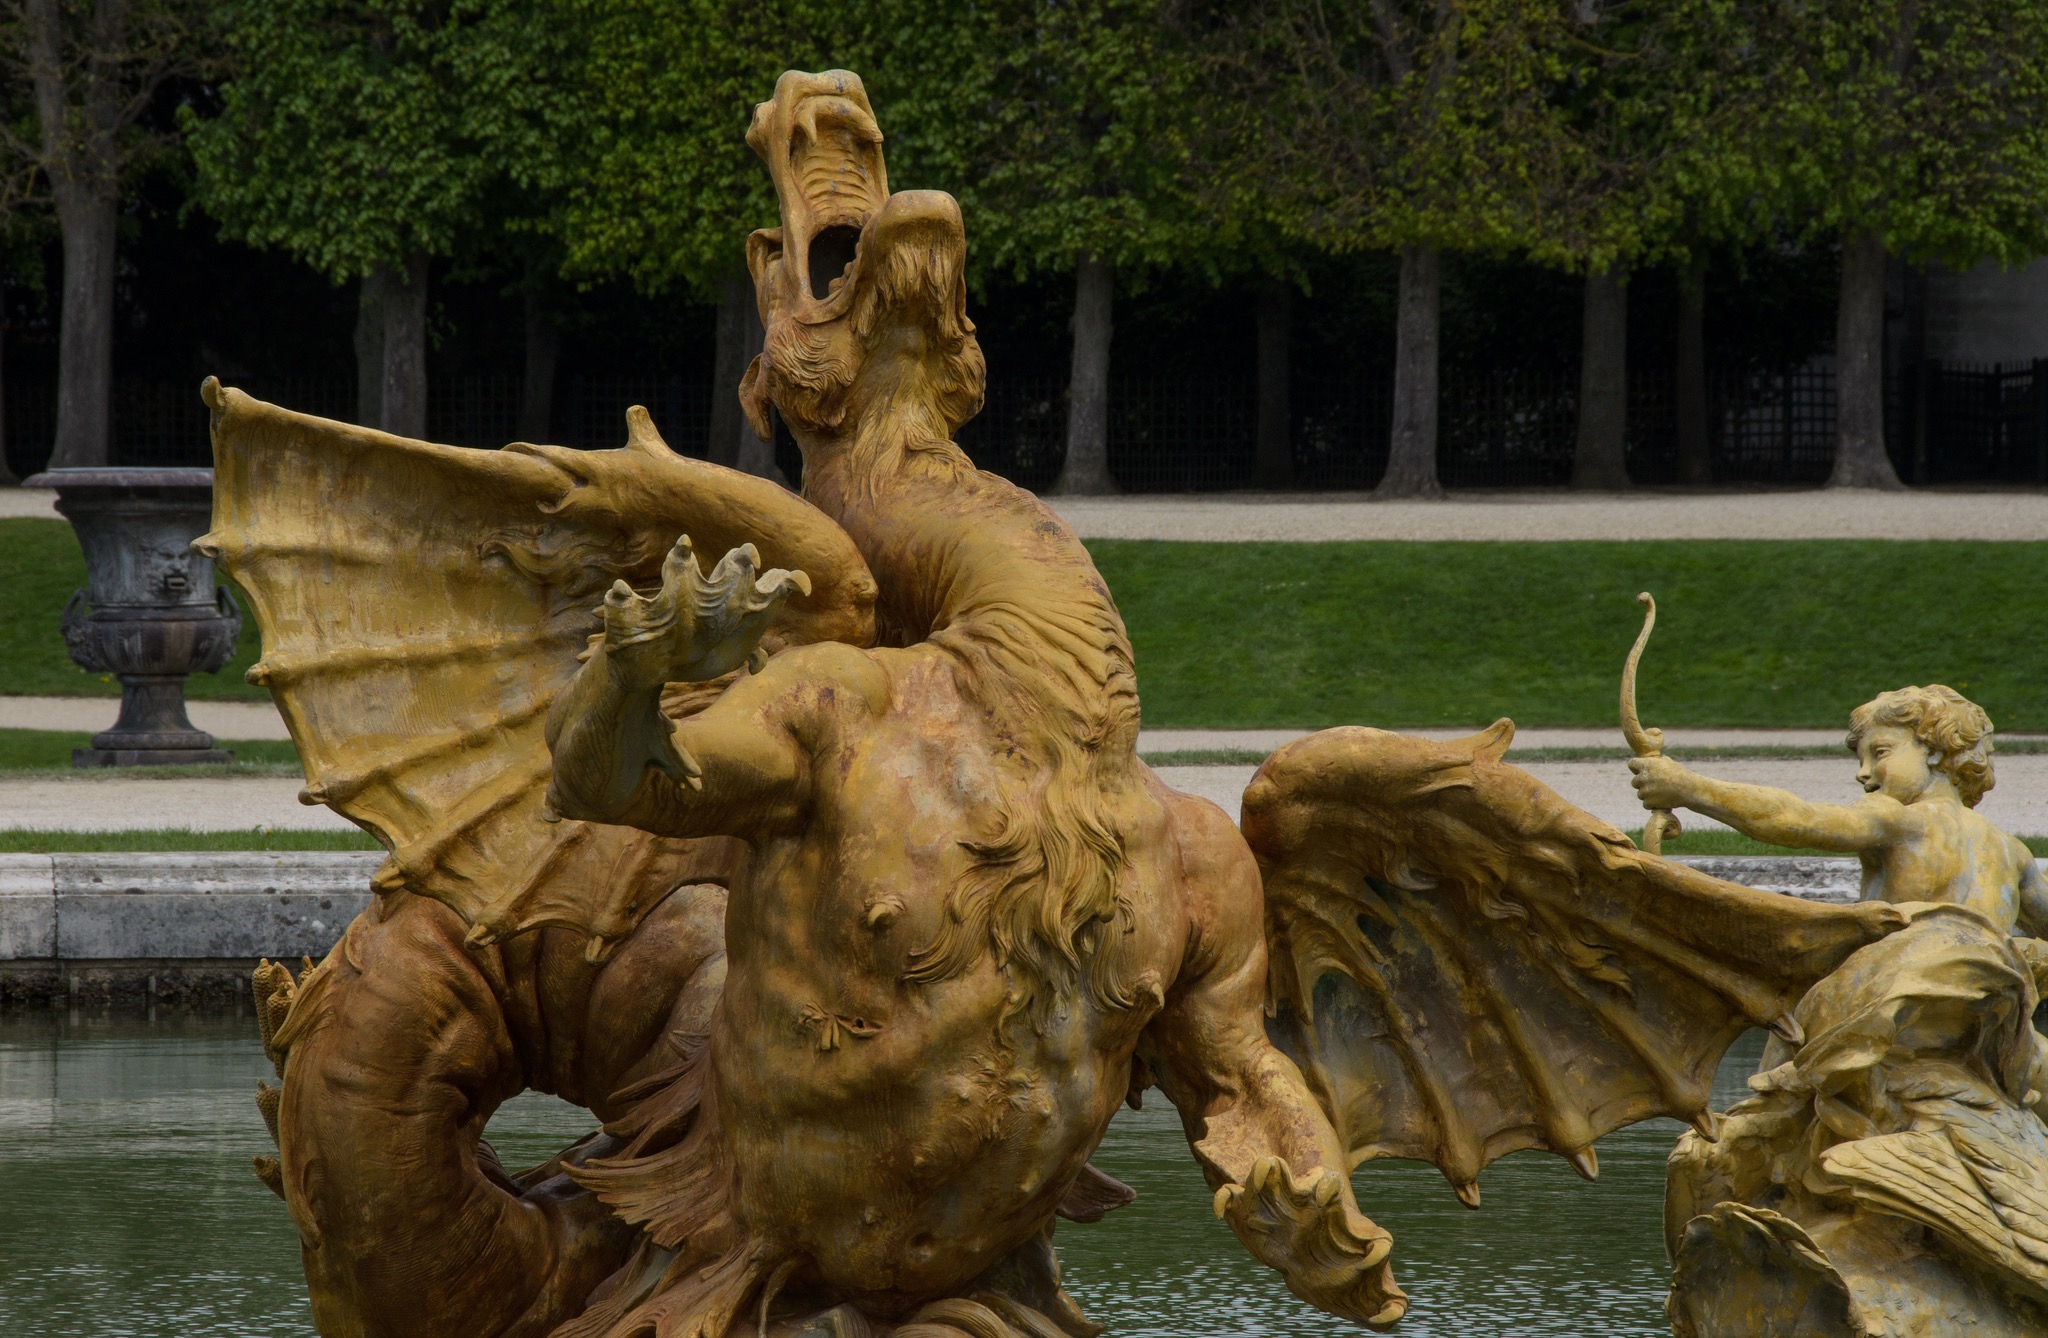 Fontaine du Dragon, Château de Versailles (France), photo de Bastiaan_65 sur Flickr, 2012